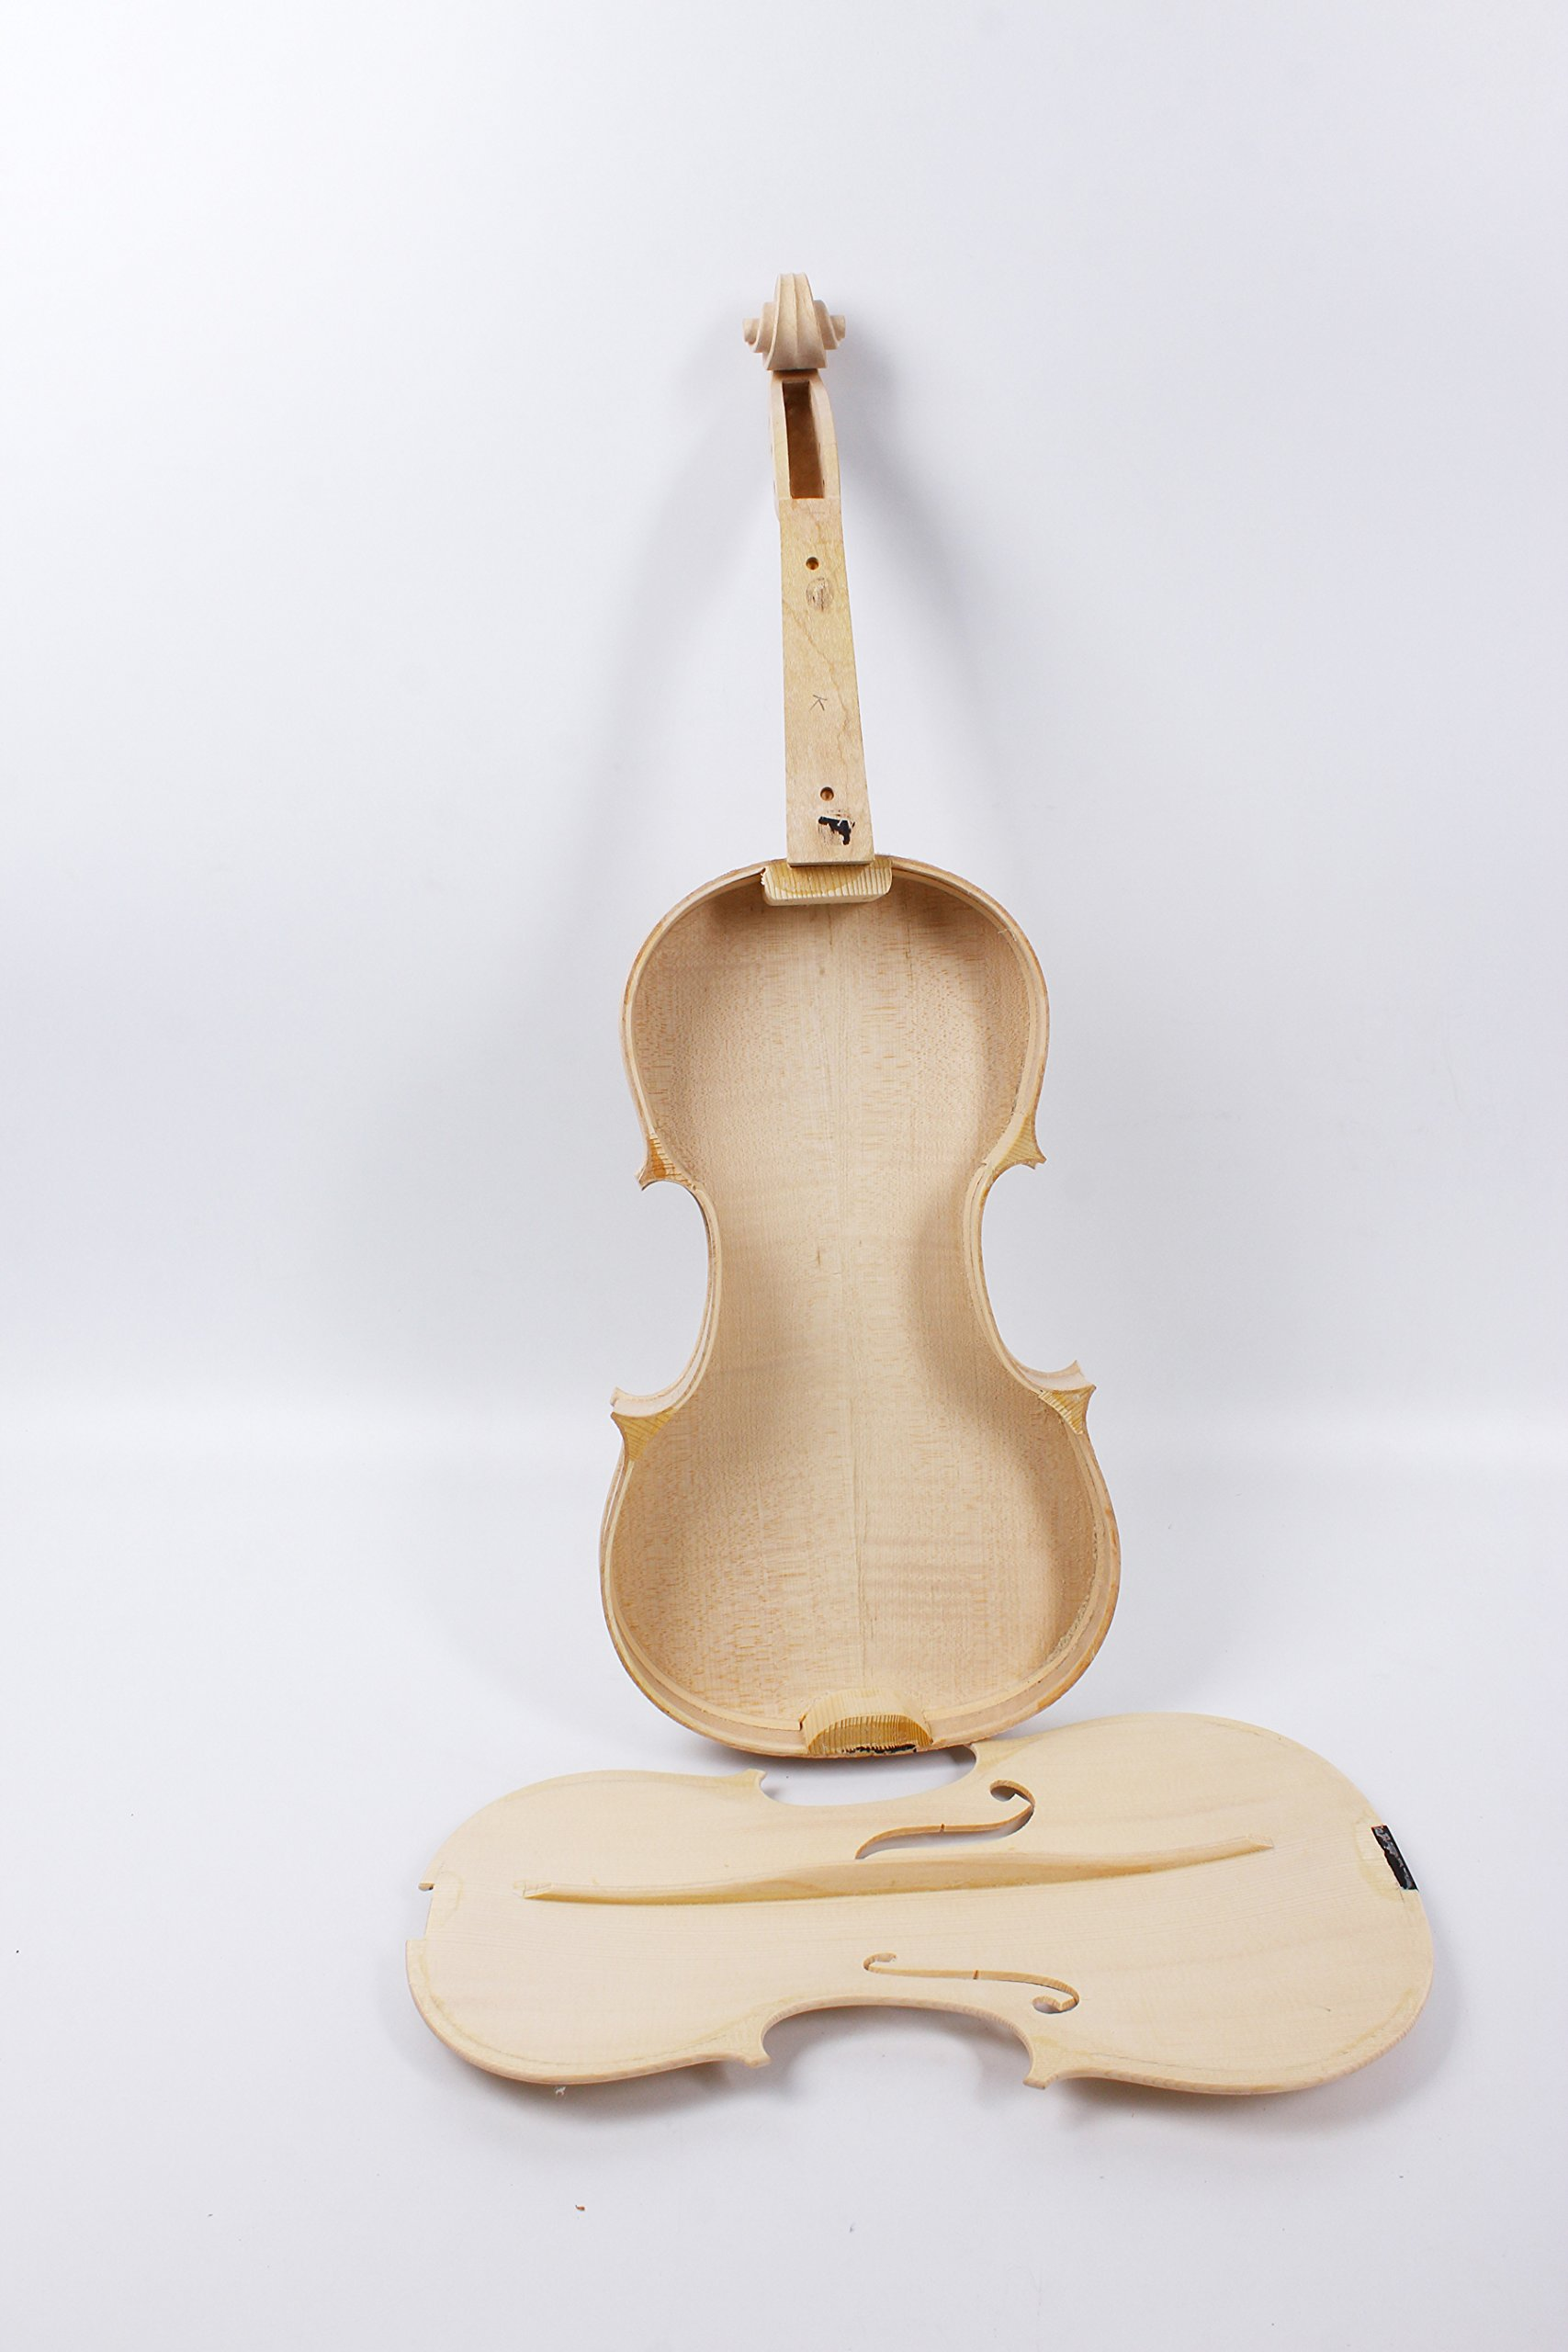 Yinfente Violin Unfinished White Violin 4/4 Unglued Violin Flame Maple & Spruce wood Top Violin Accessory Parts